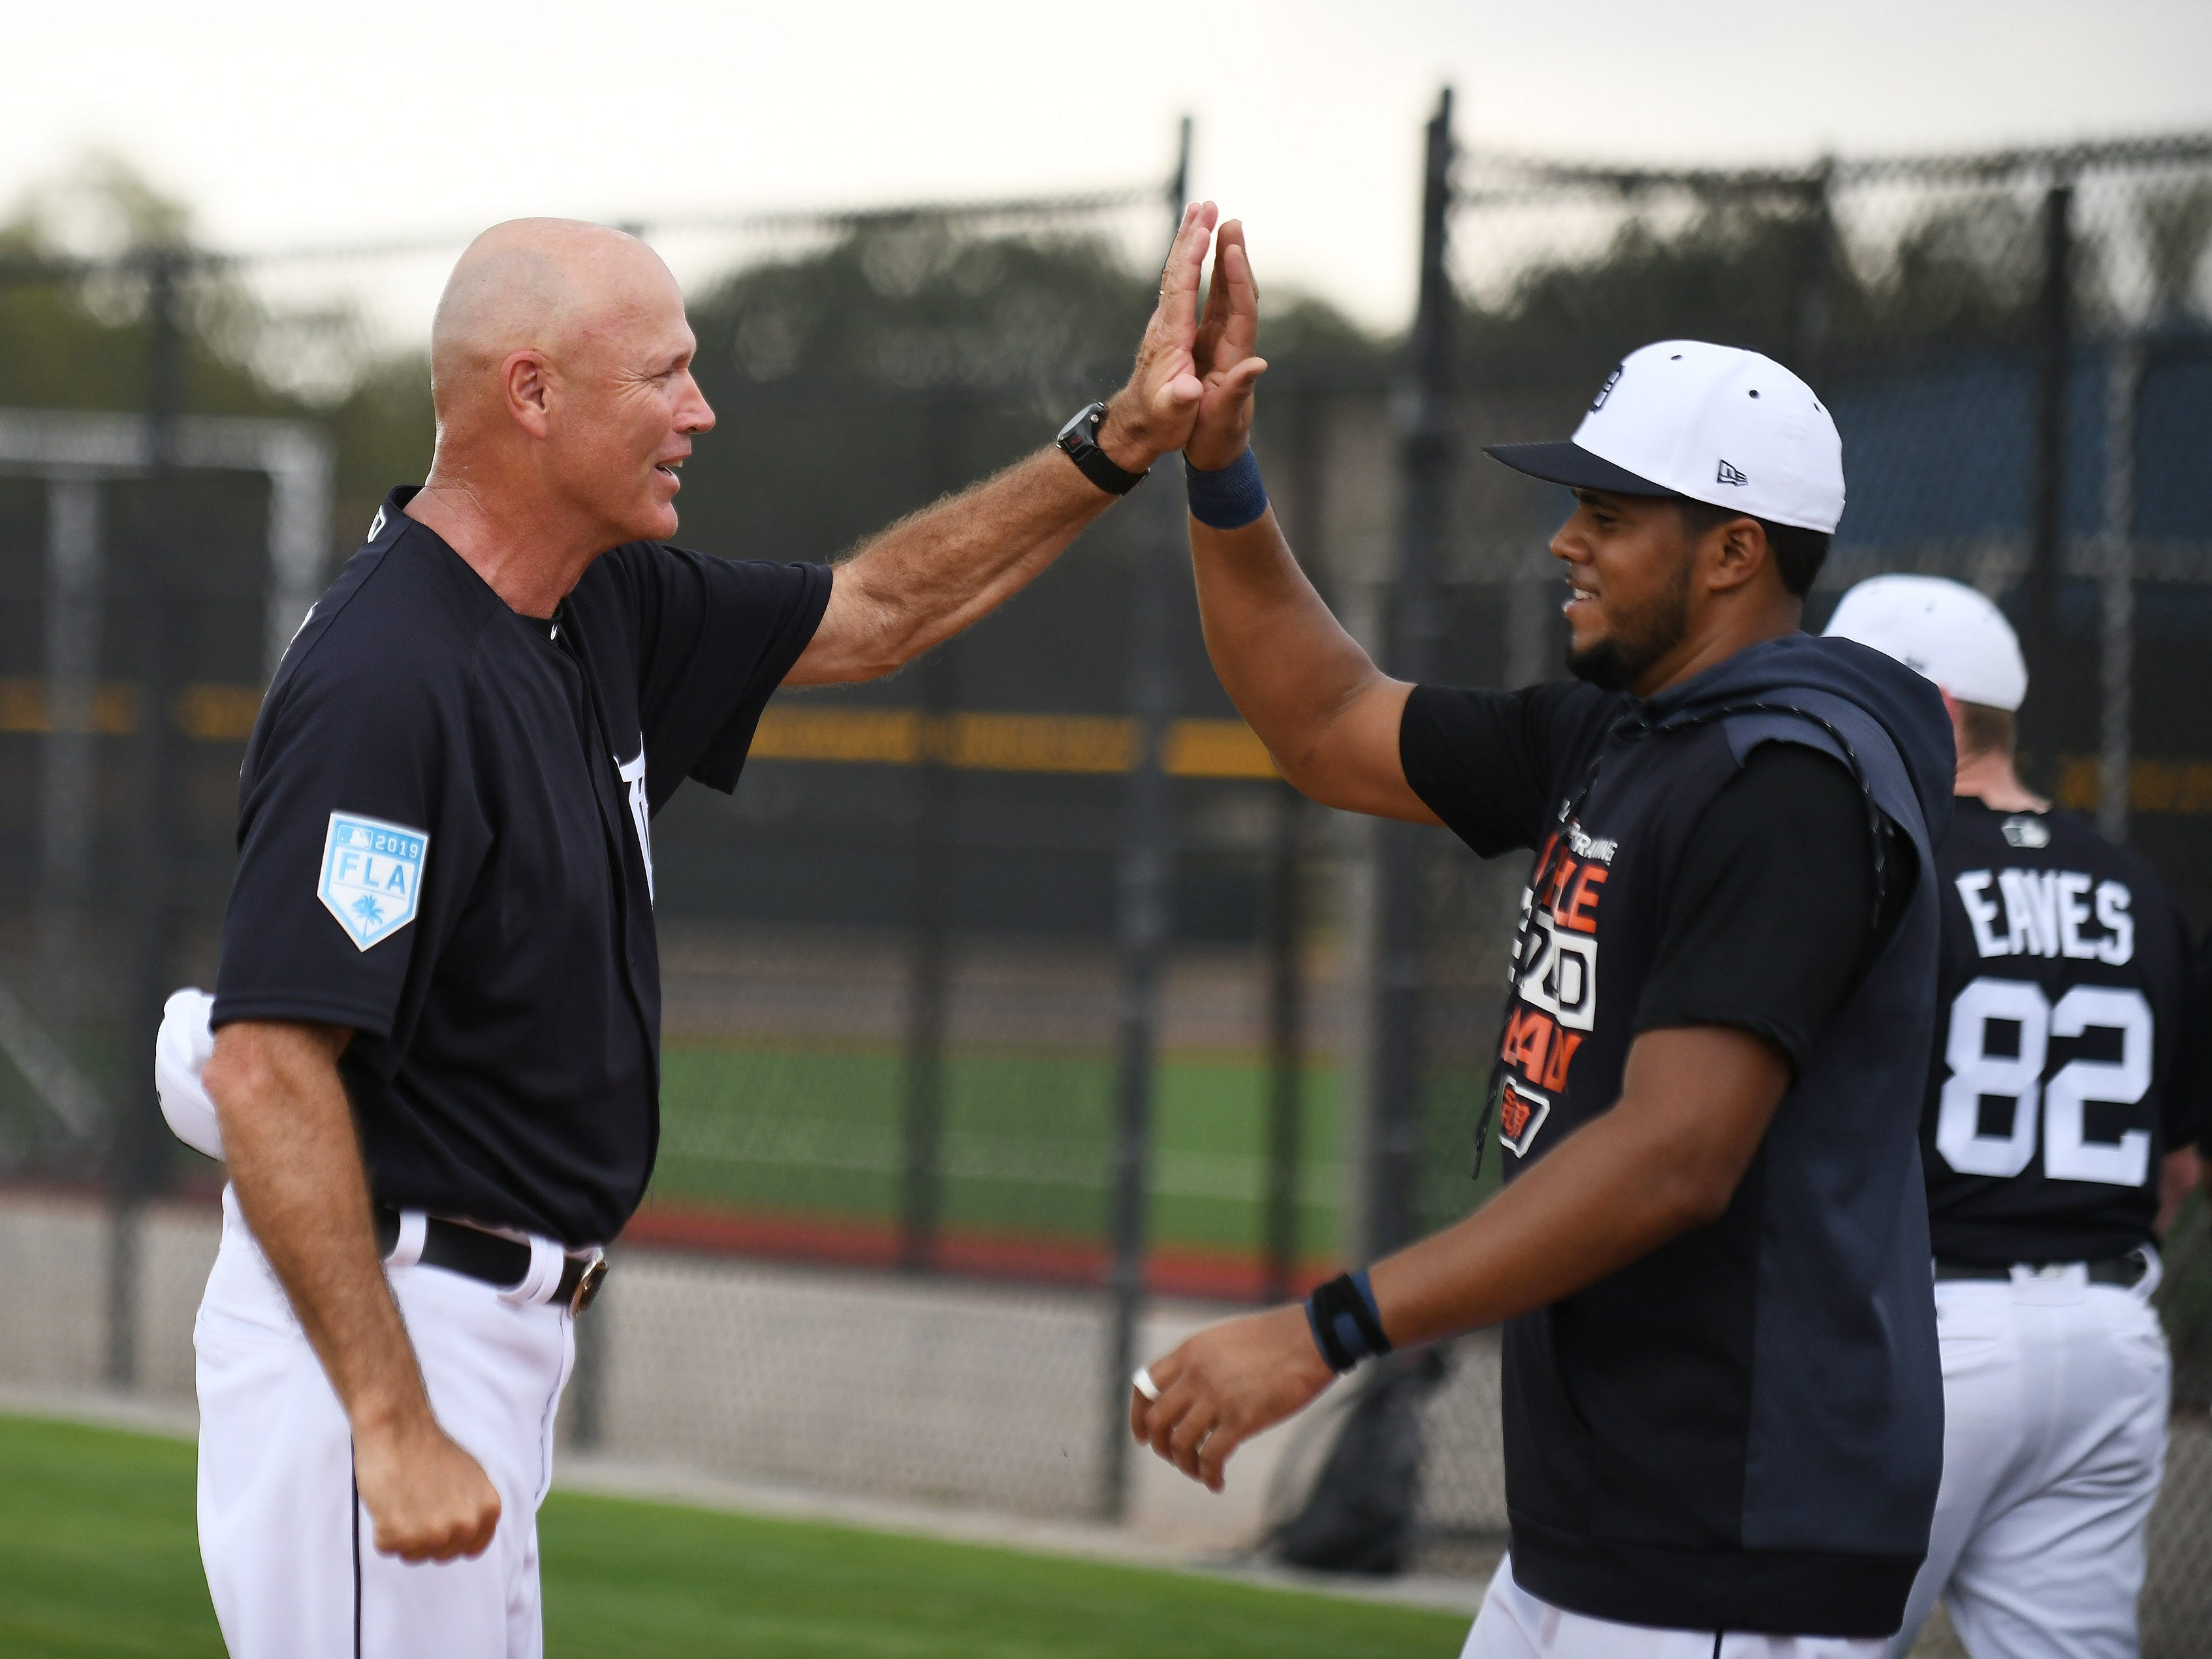 Tigers bench coach Steve Liddle, left, high fives Jeimer Candelario near the end of the first full squad workout.